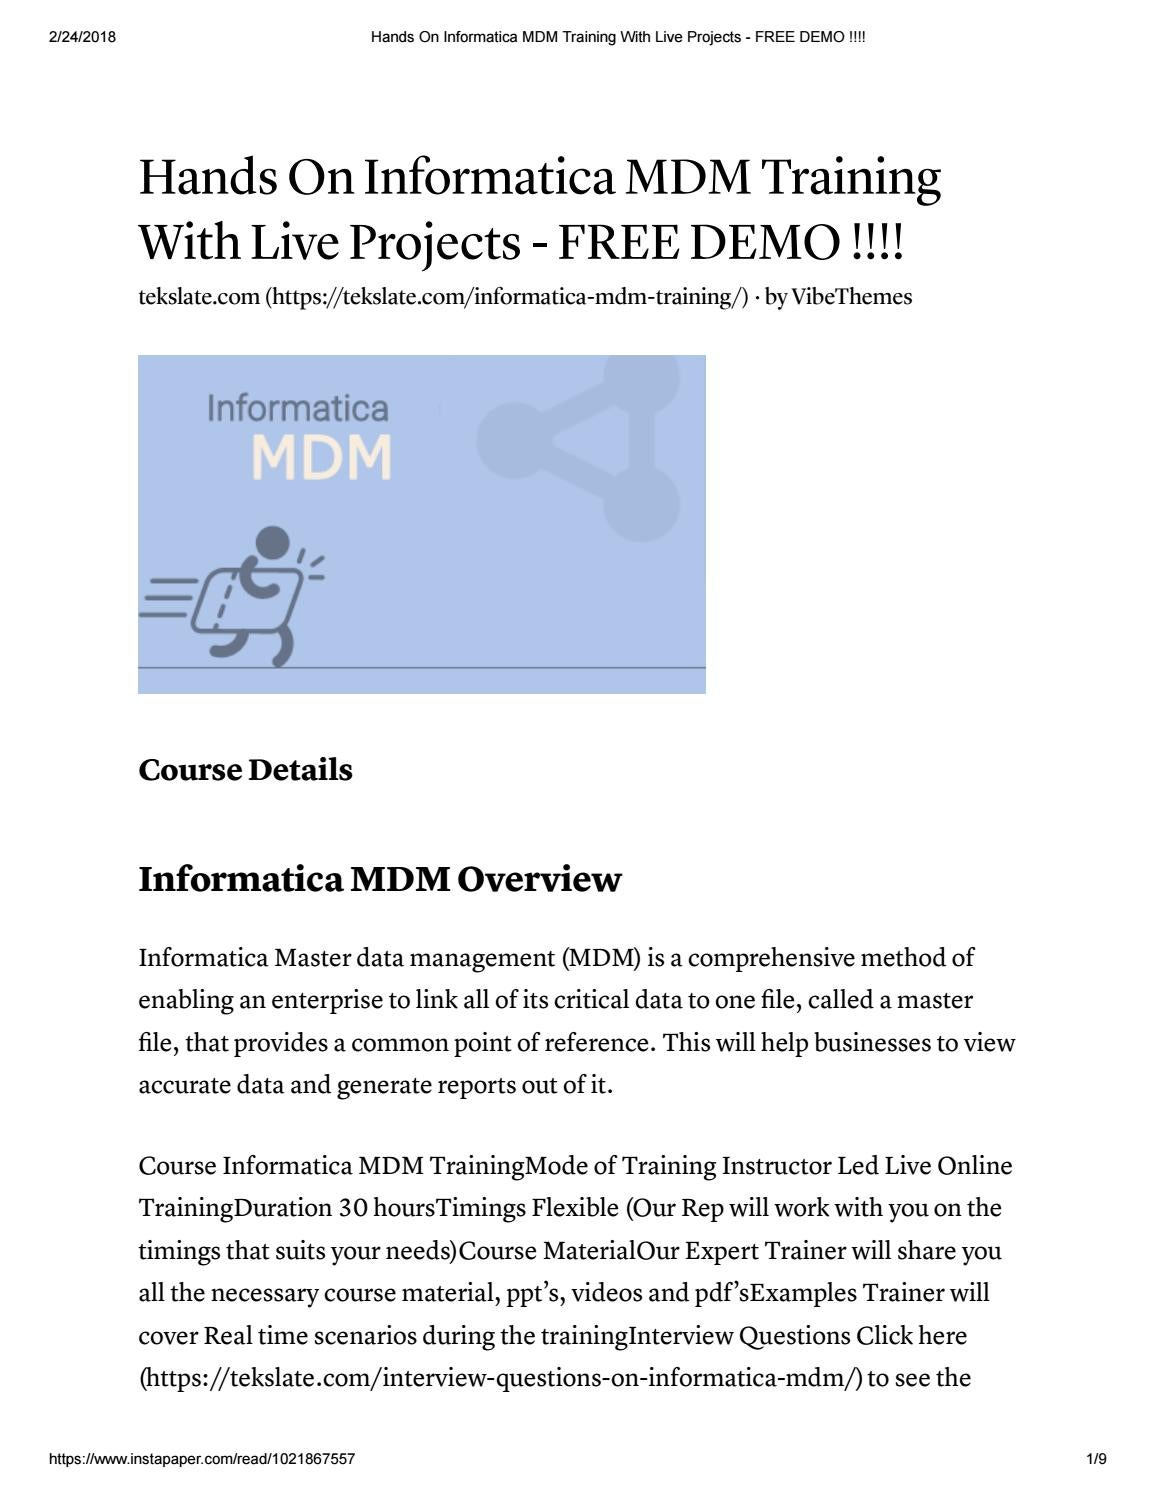 informatica mdm training with live projects free demo